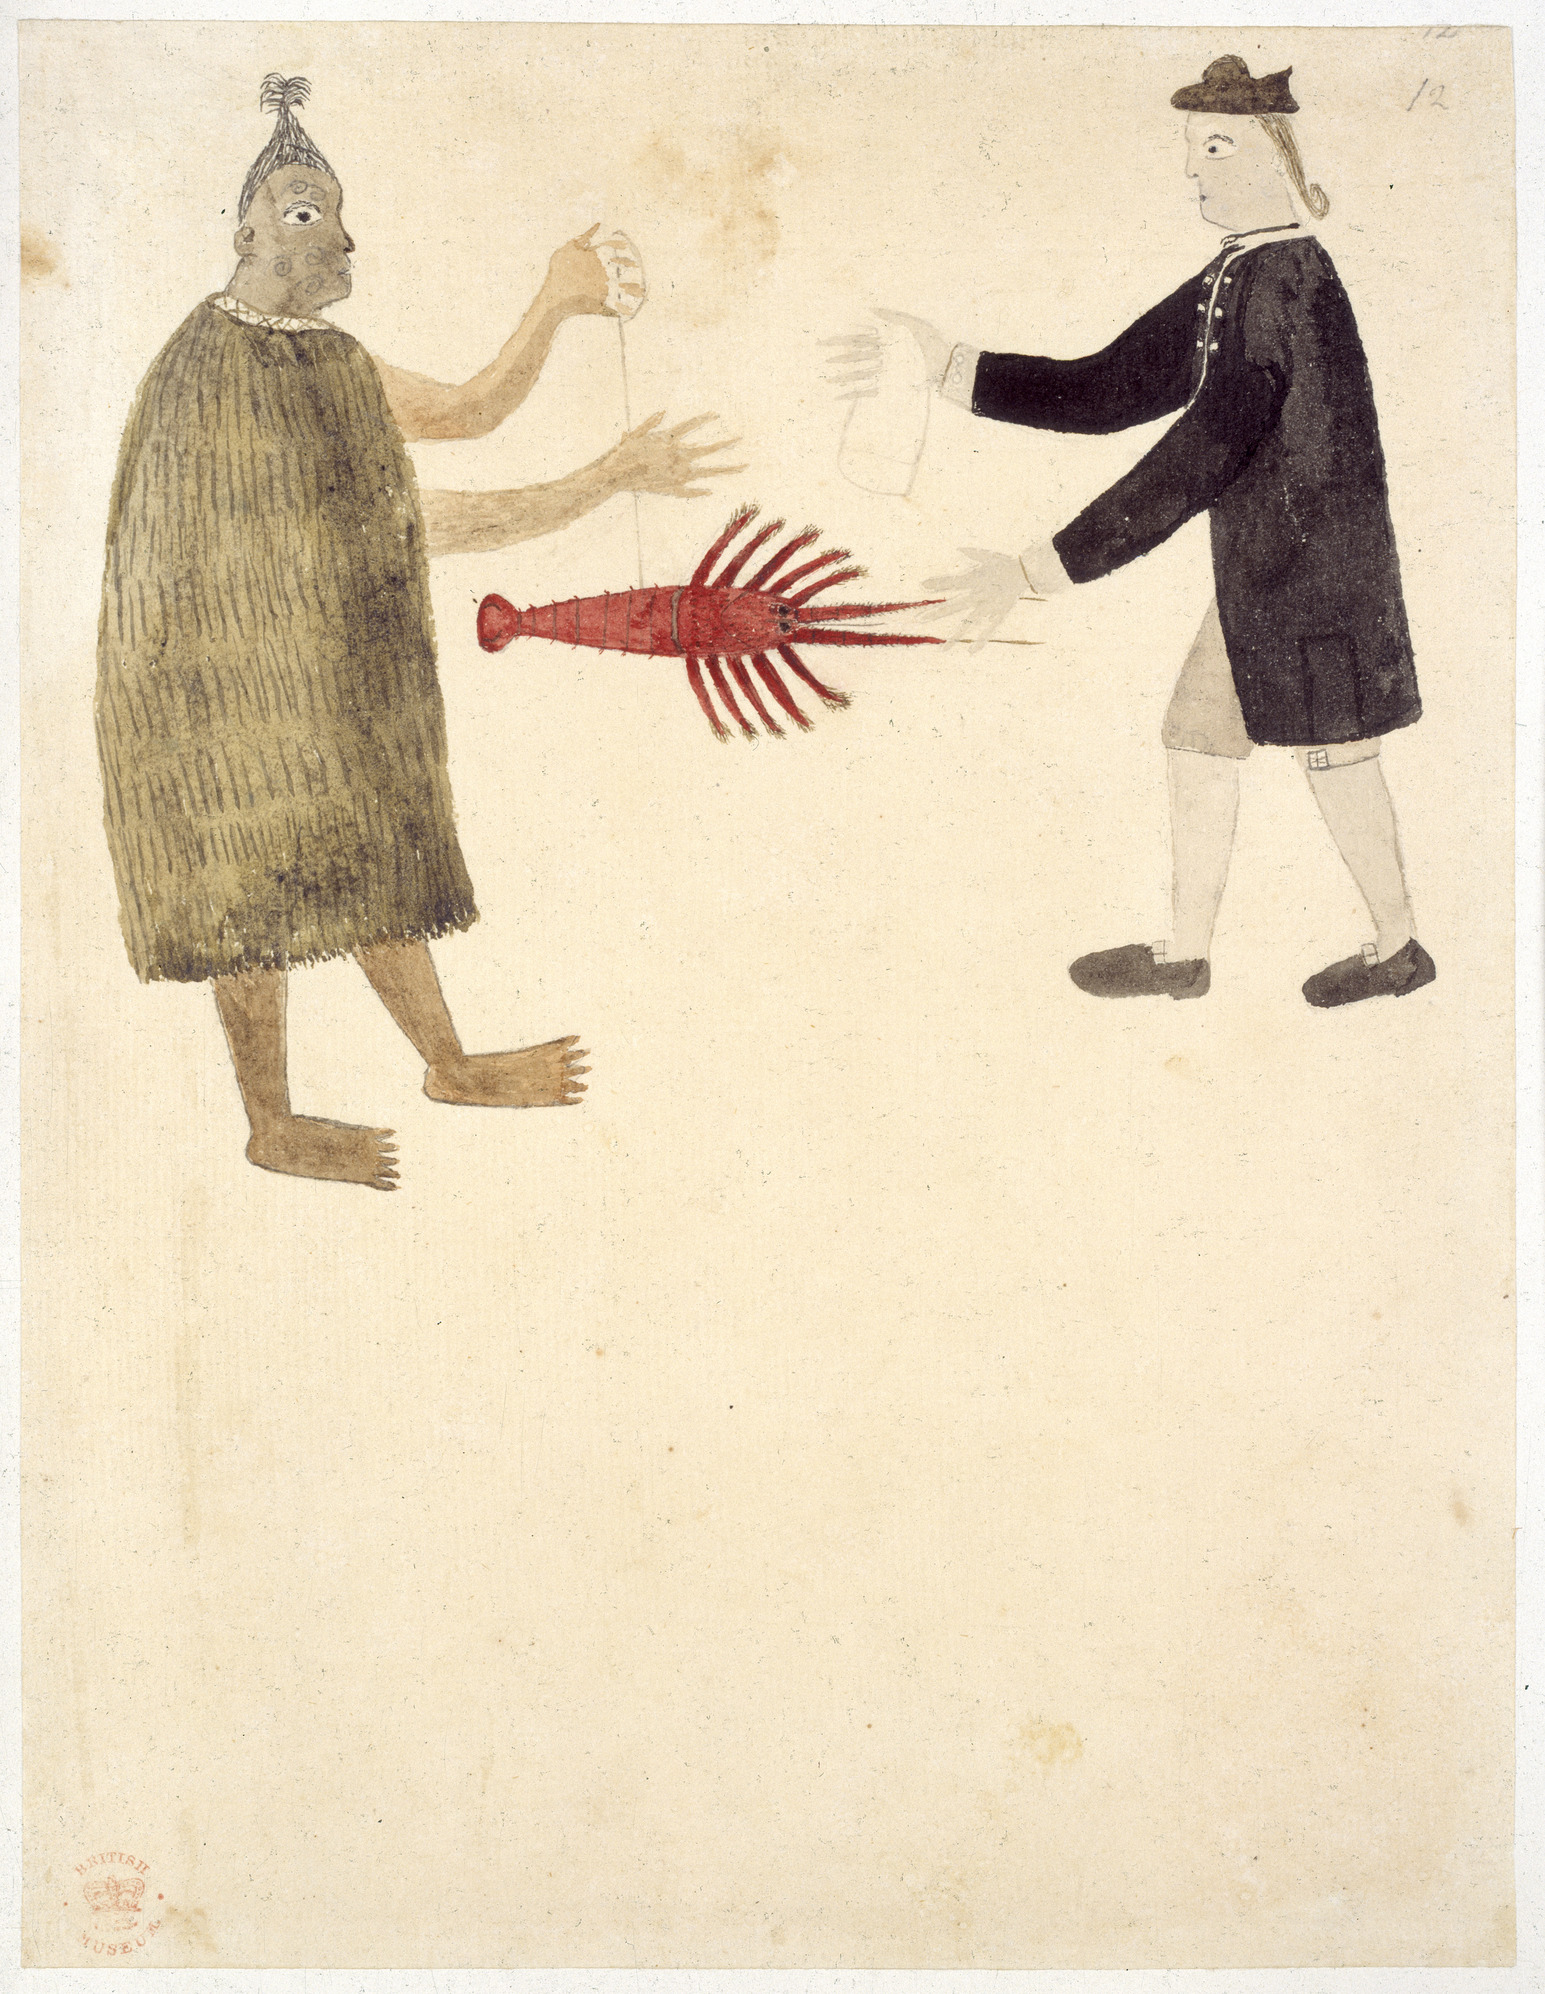 File:Maori bartering a crayfish - Drawings illustrative of Captain Cook's  First Voyage (1769